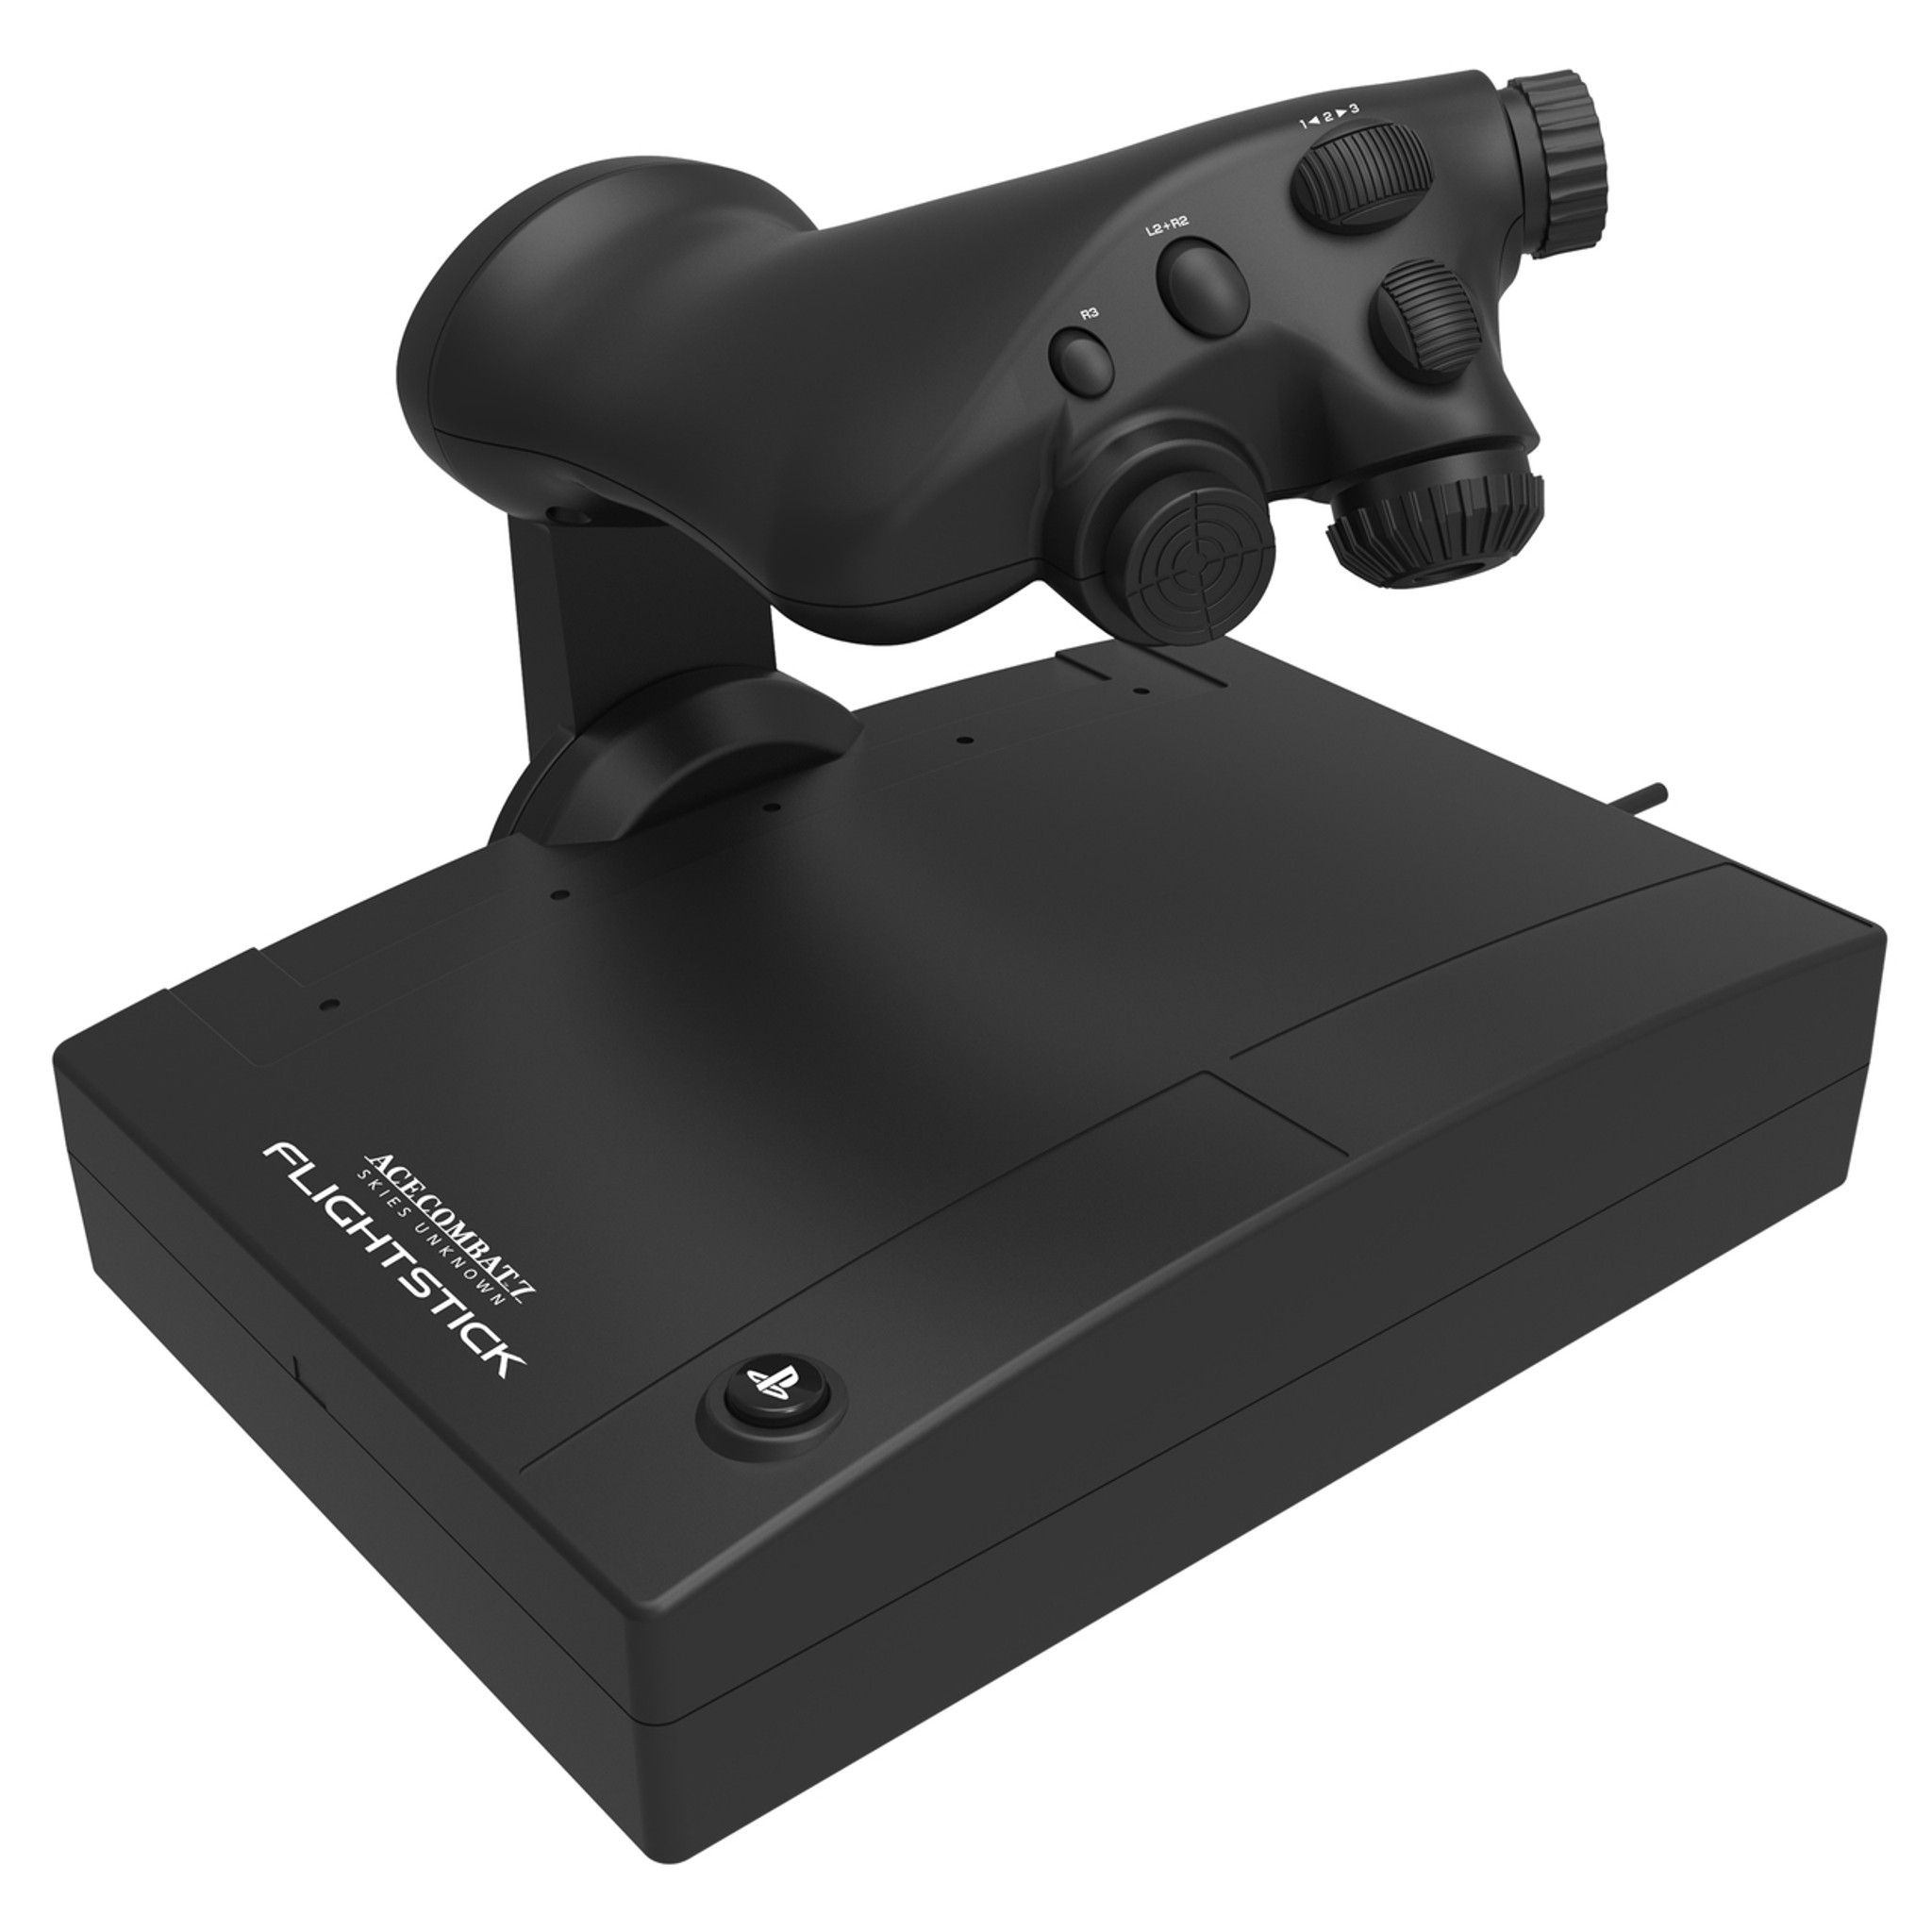 Ace Combat 7 HOTAS Flight Stick for PlayStation 4